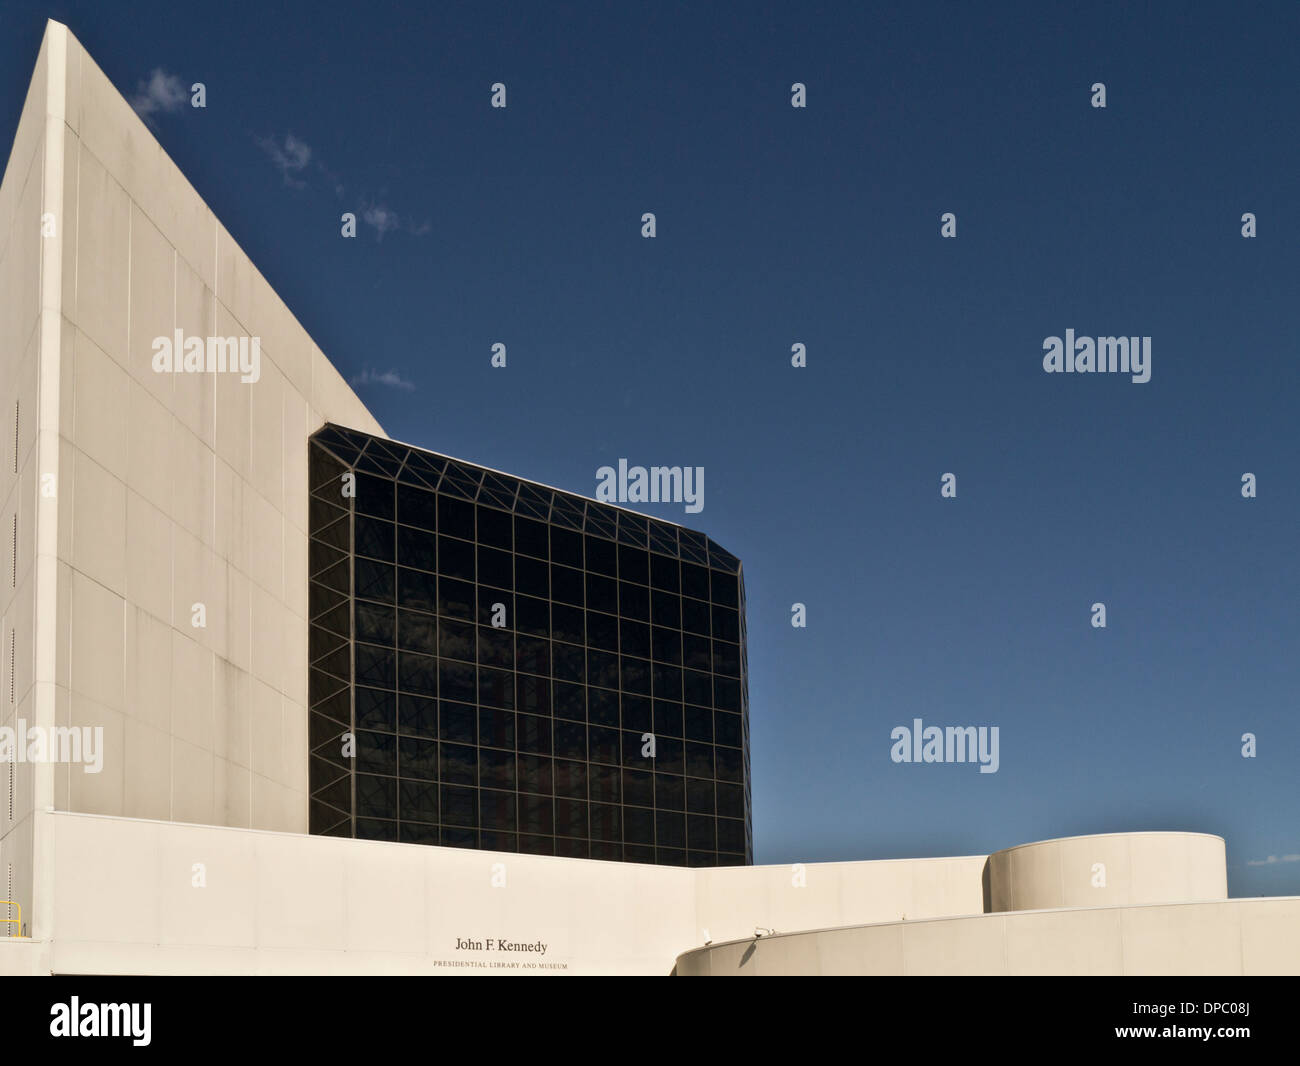 Kennedy Library Stock Photos & Kennedy Library Stock Images - Alamy